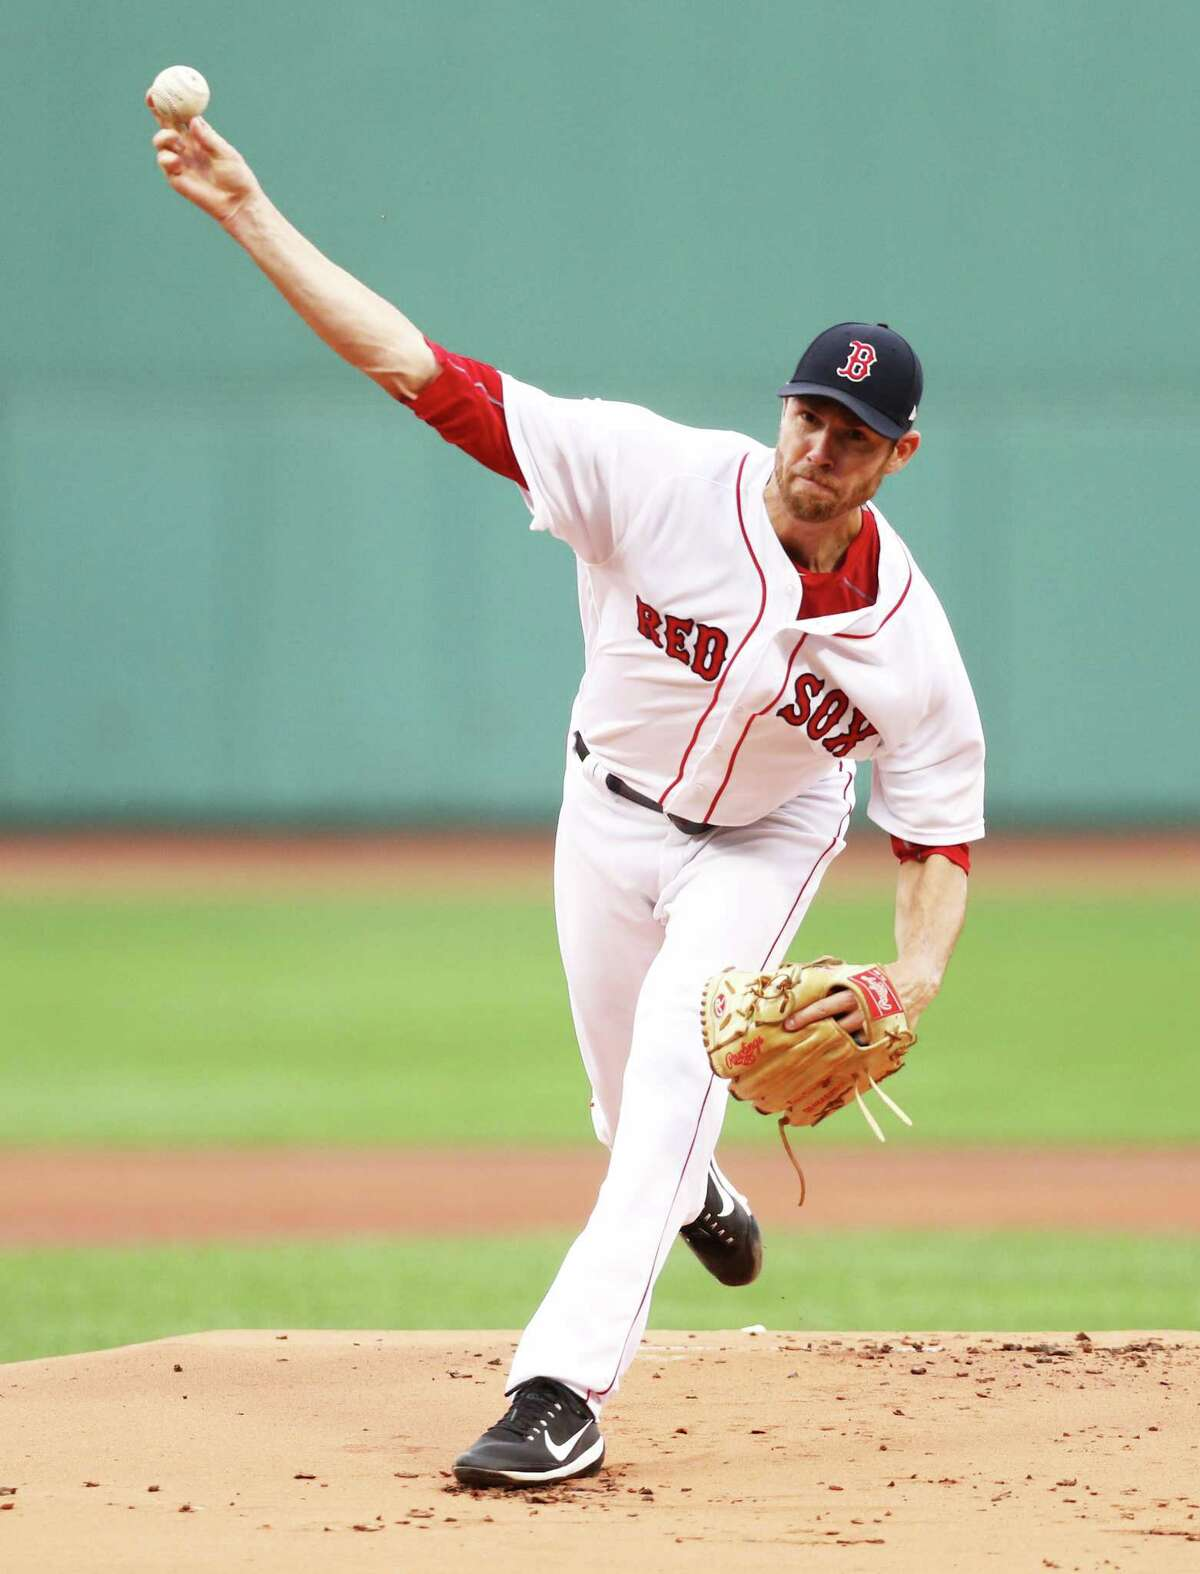 BOSTON, MA - AUGUST 14: Doug Fister #38 of the Boston Red Sox pitches against the Cleveland Indians during the first inning at Fenway Park on August 14, 2017 in Boston, Massachusetts. (Photo by Maddie Meyer/Getty Images) ORG XMIT: 775020105